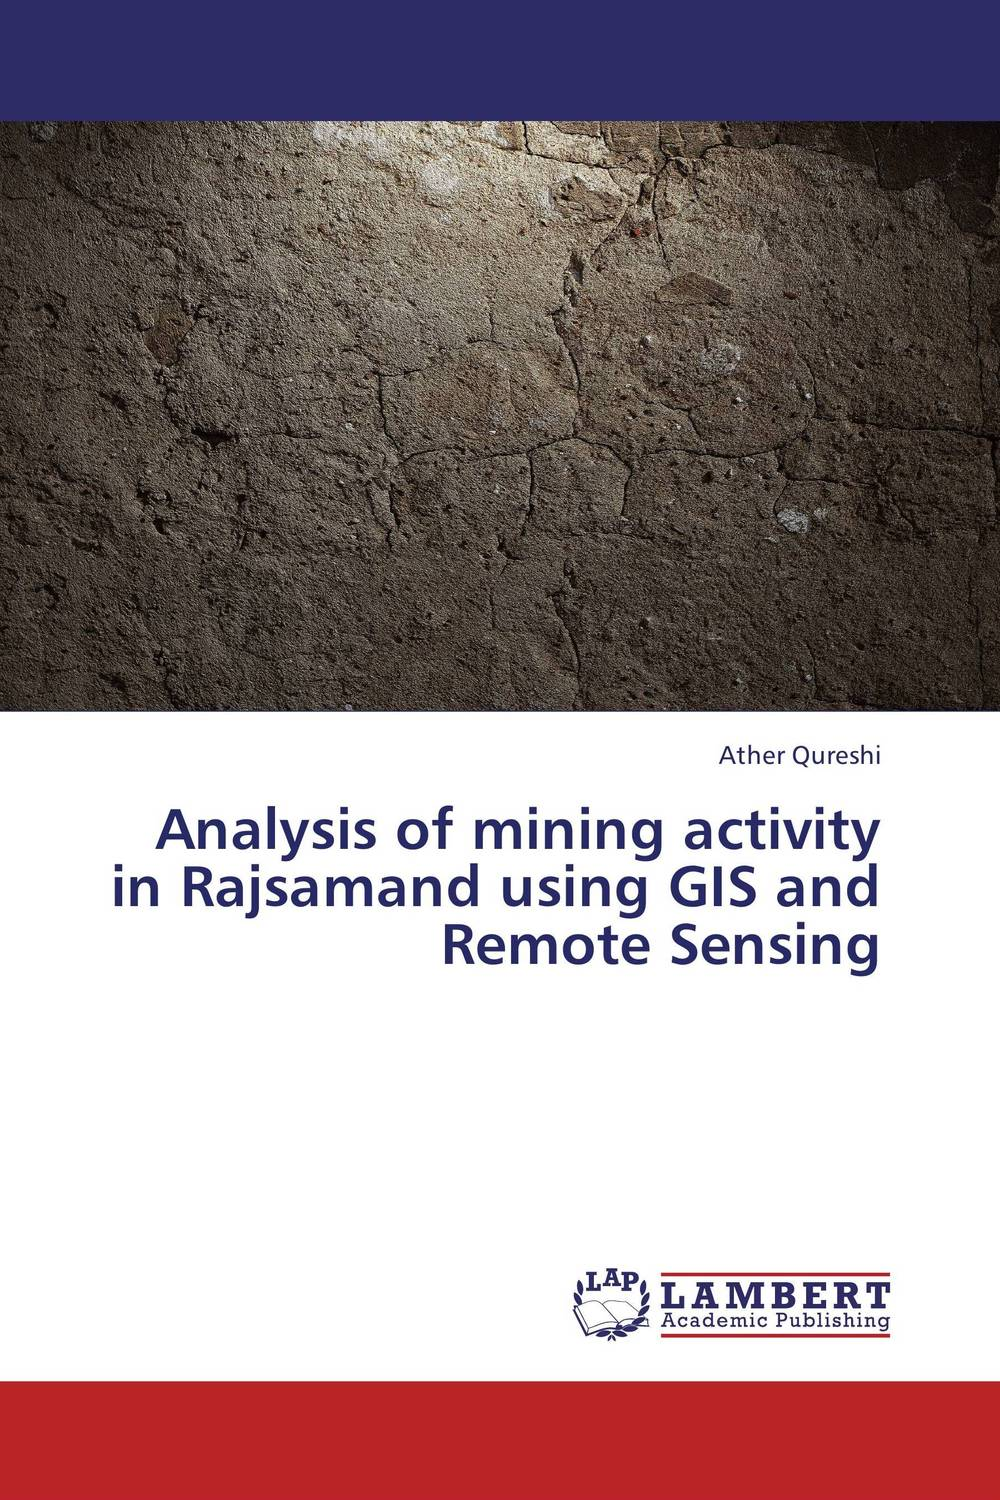 Analysis of mining activity in Rajsamand using GIS and Remote Sensing developing networks in obesity using text mining